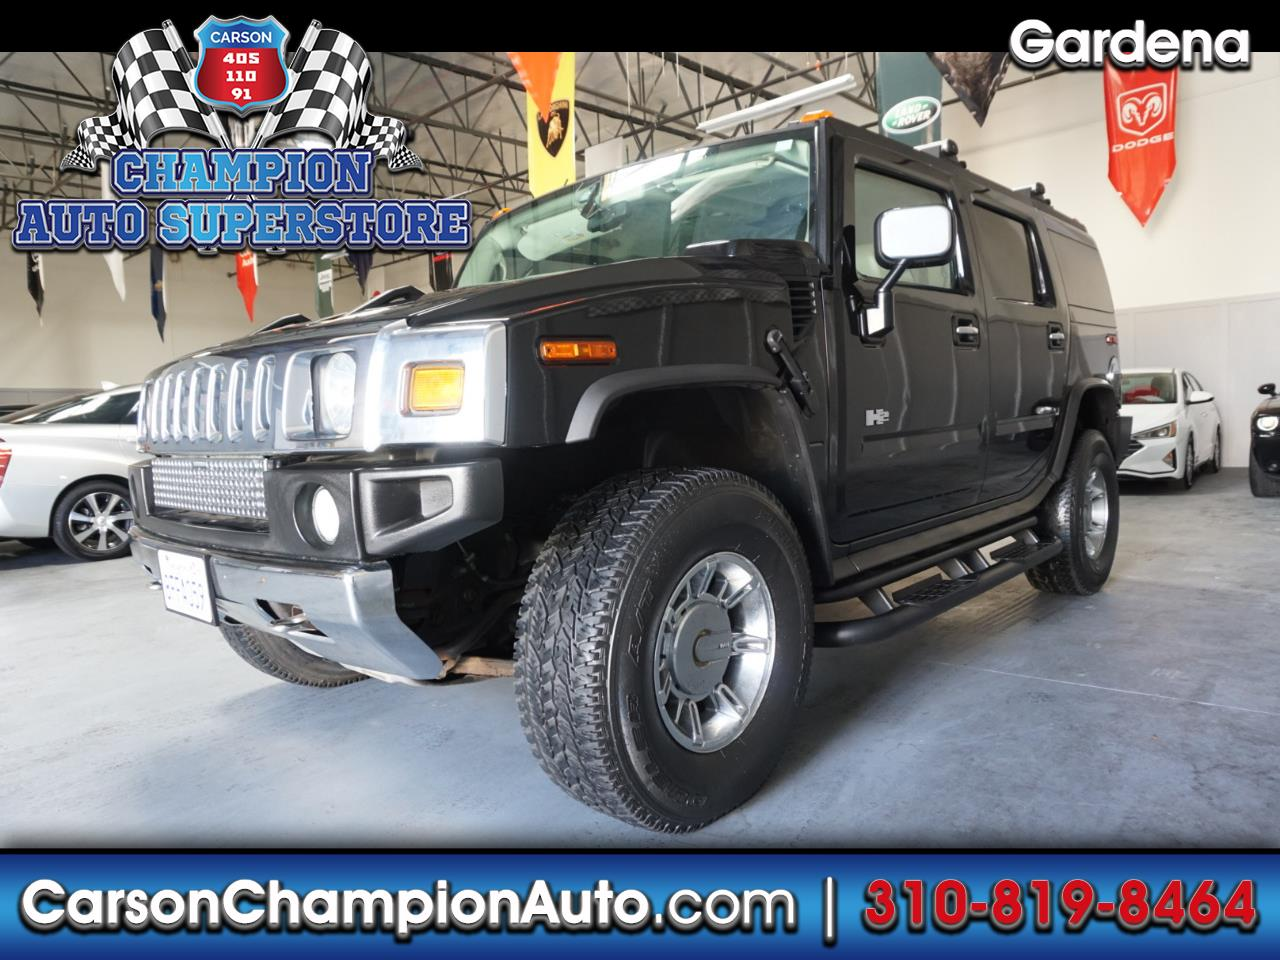 HUMMER H2 4WD 4dr SUV Adventure 2003